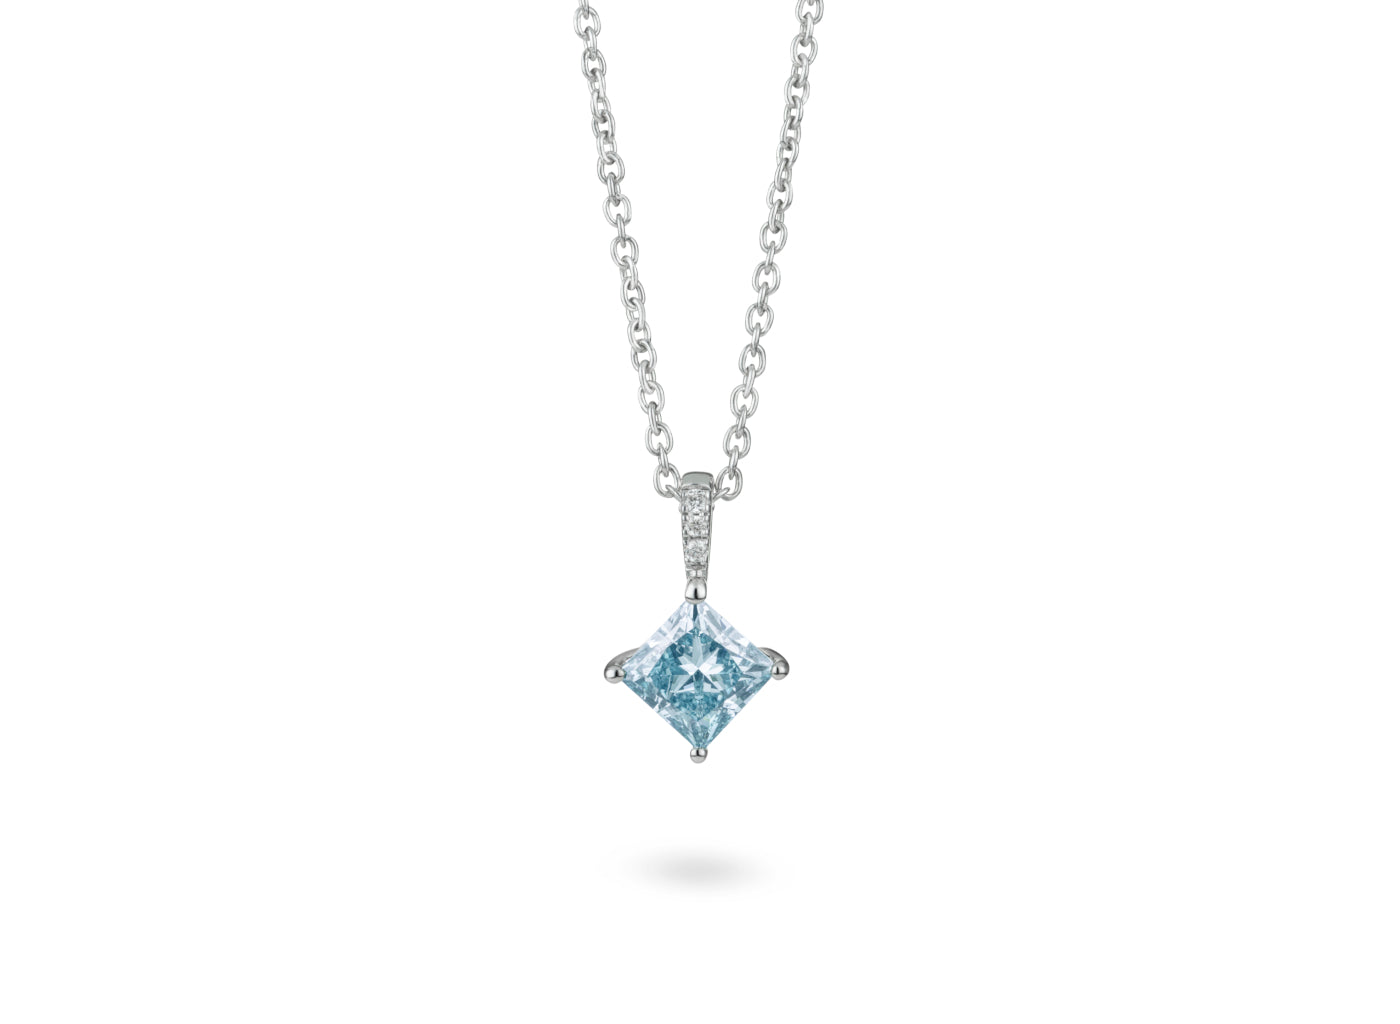 Front view of Princess pavé 1 carat pendant with blue and white diamonds